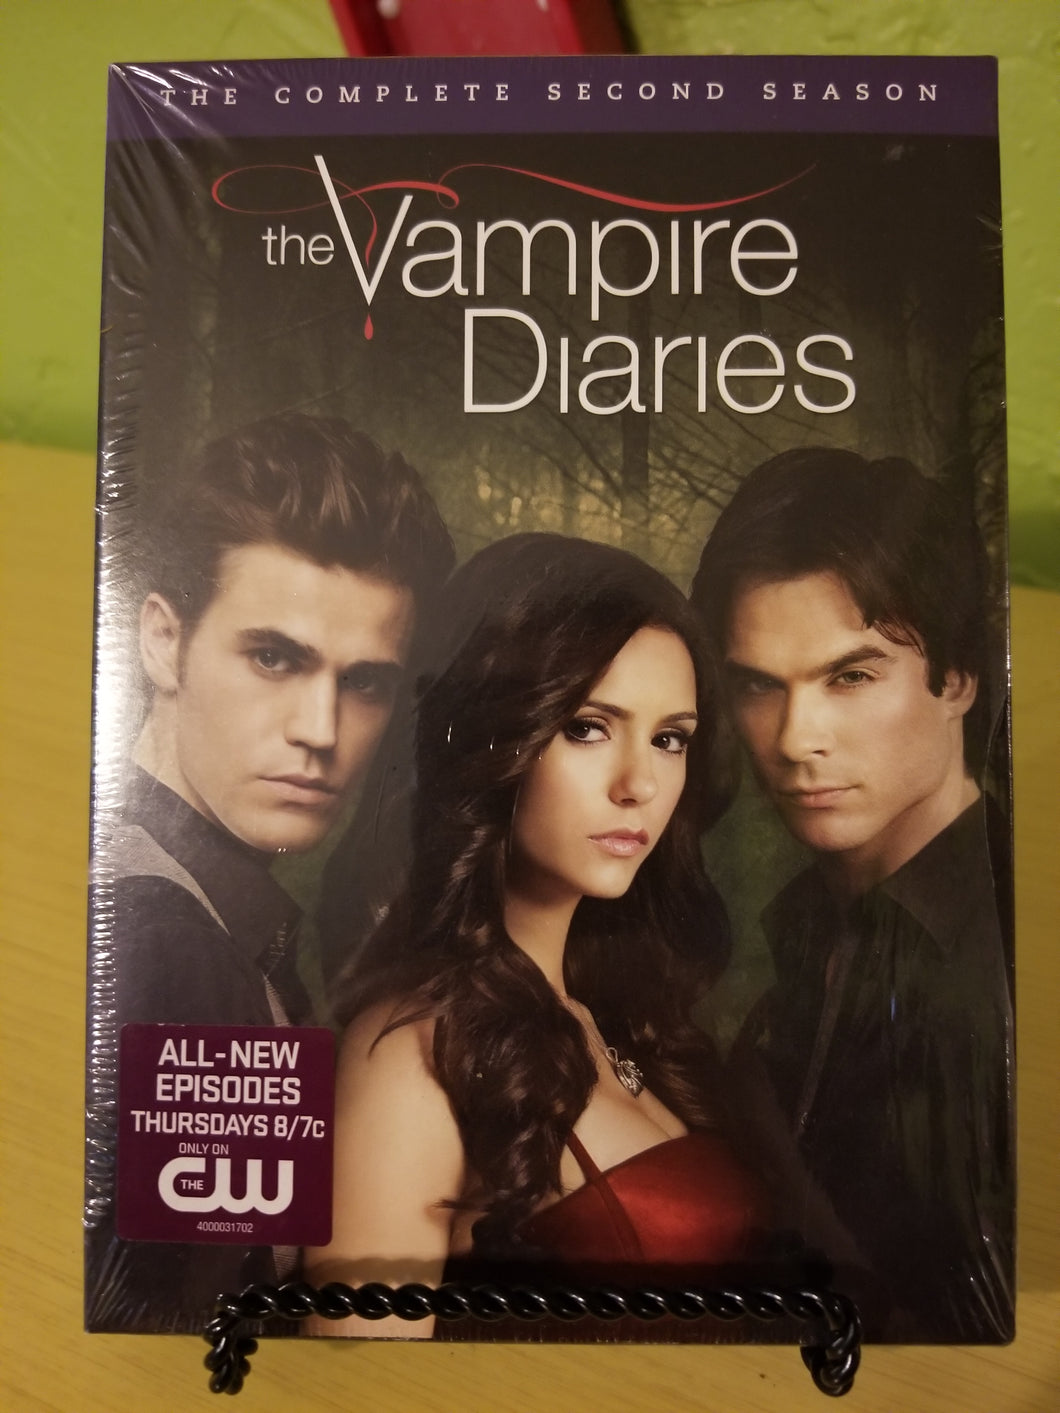 Vampire Diaries Season 2 DVD